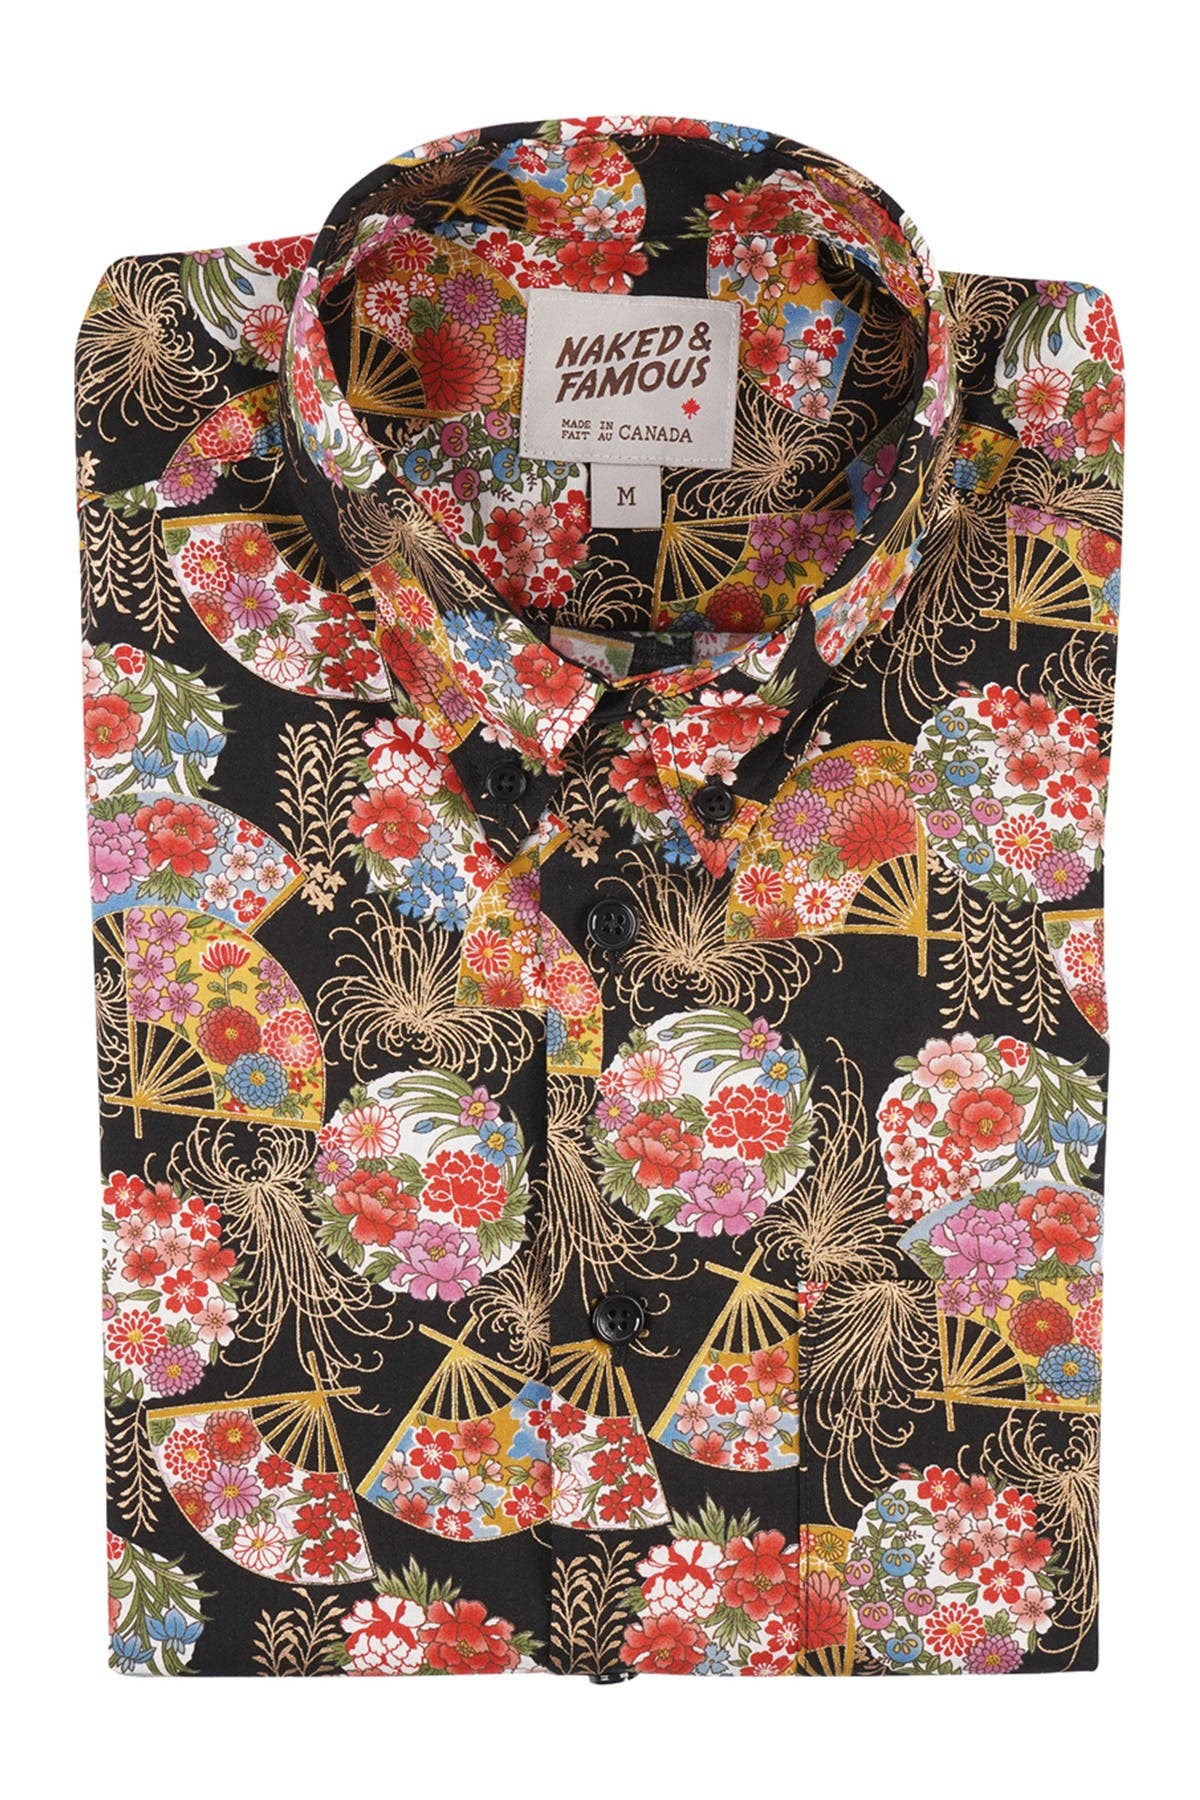 Image of Naked and Famous Golden Floral Fans Short Sleeve Shirt